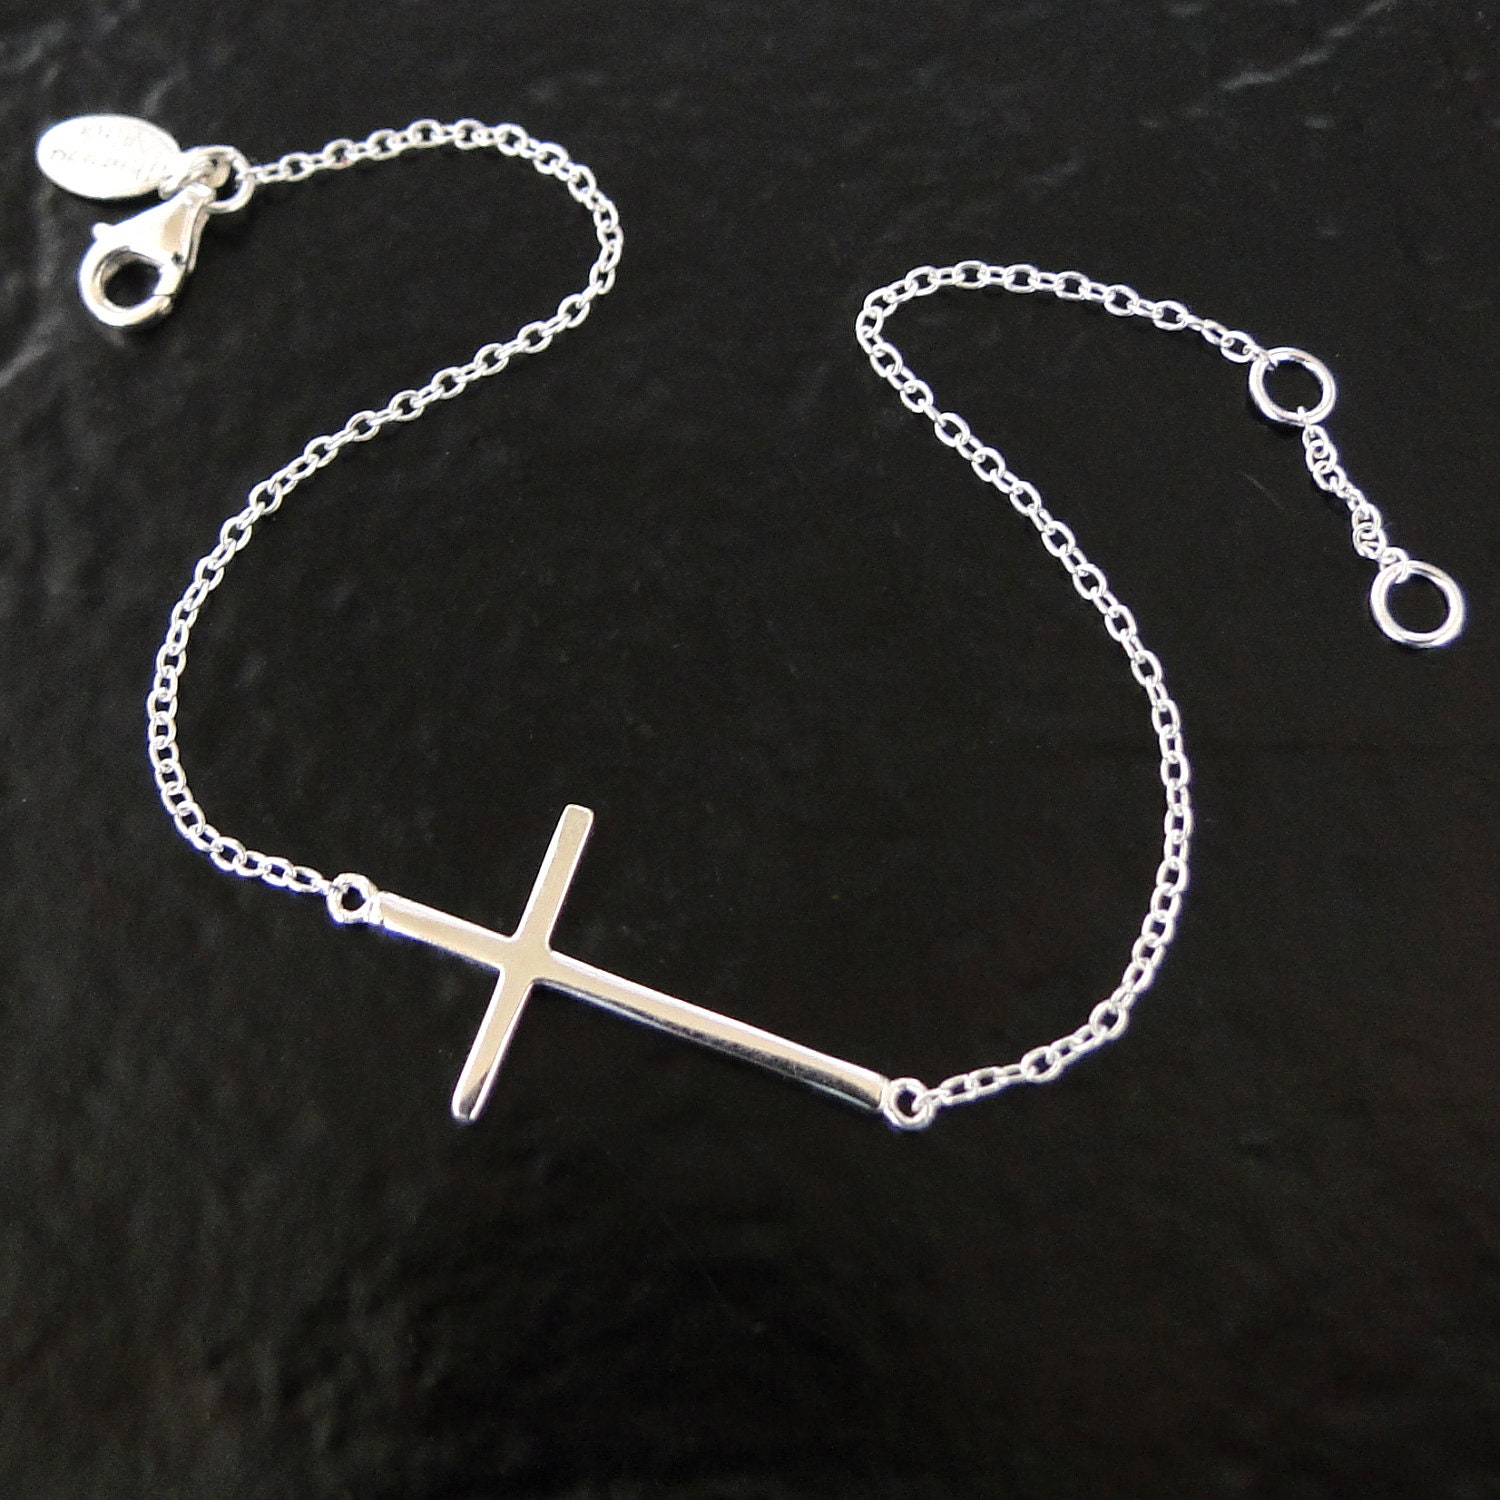 Diamond Sideways Cross Bracelet Sideways Cross Bracelet